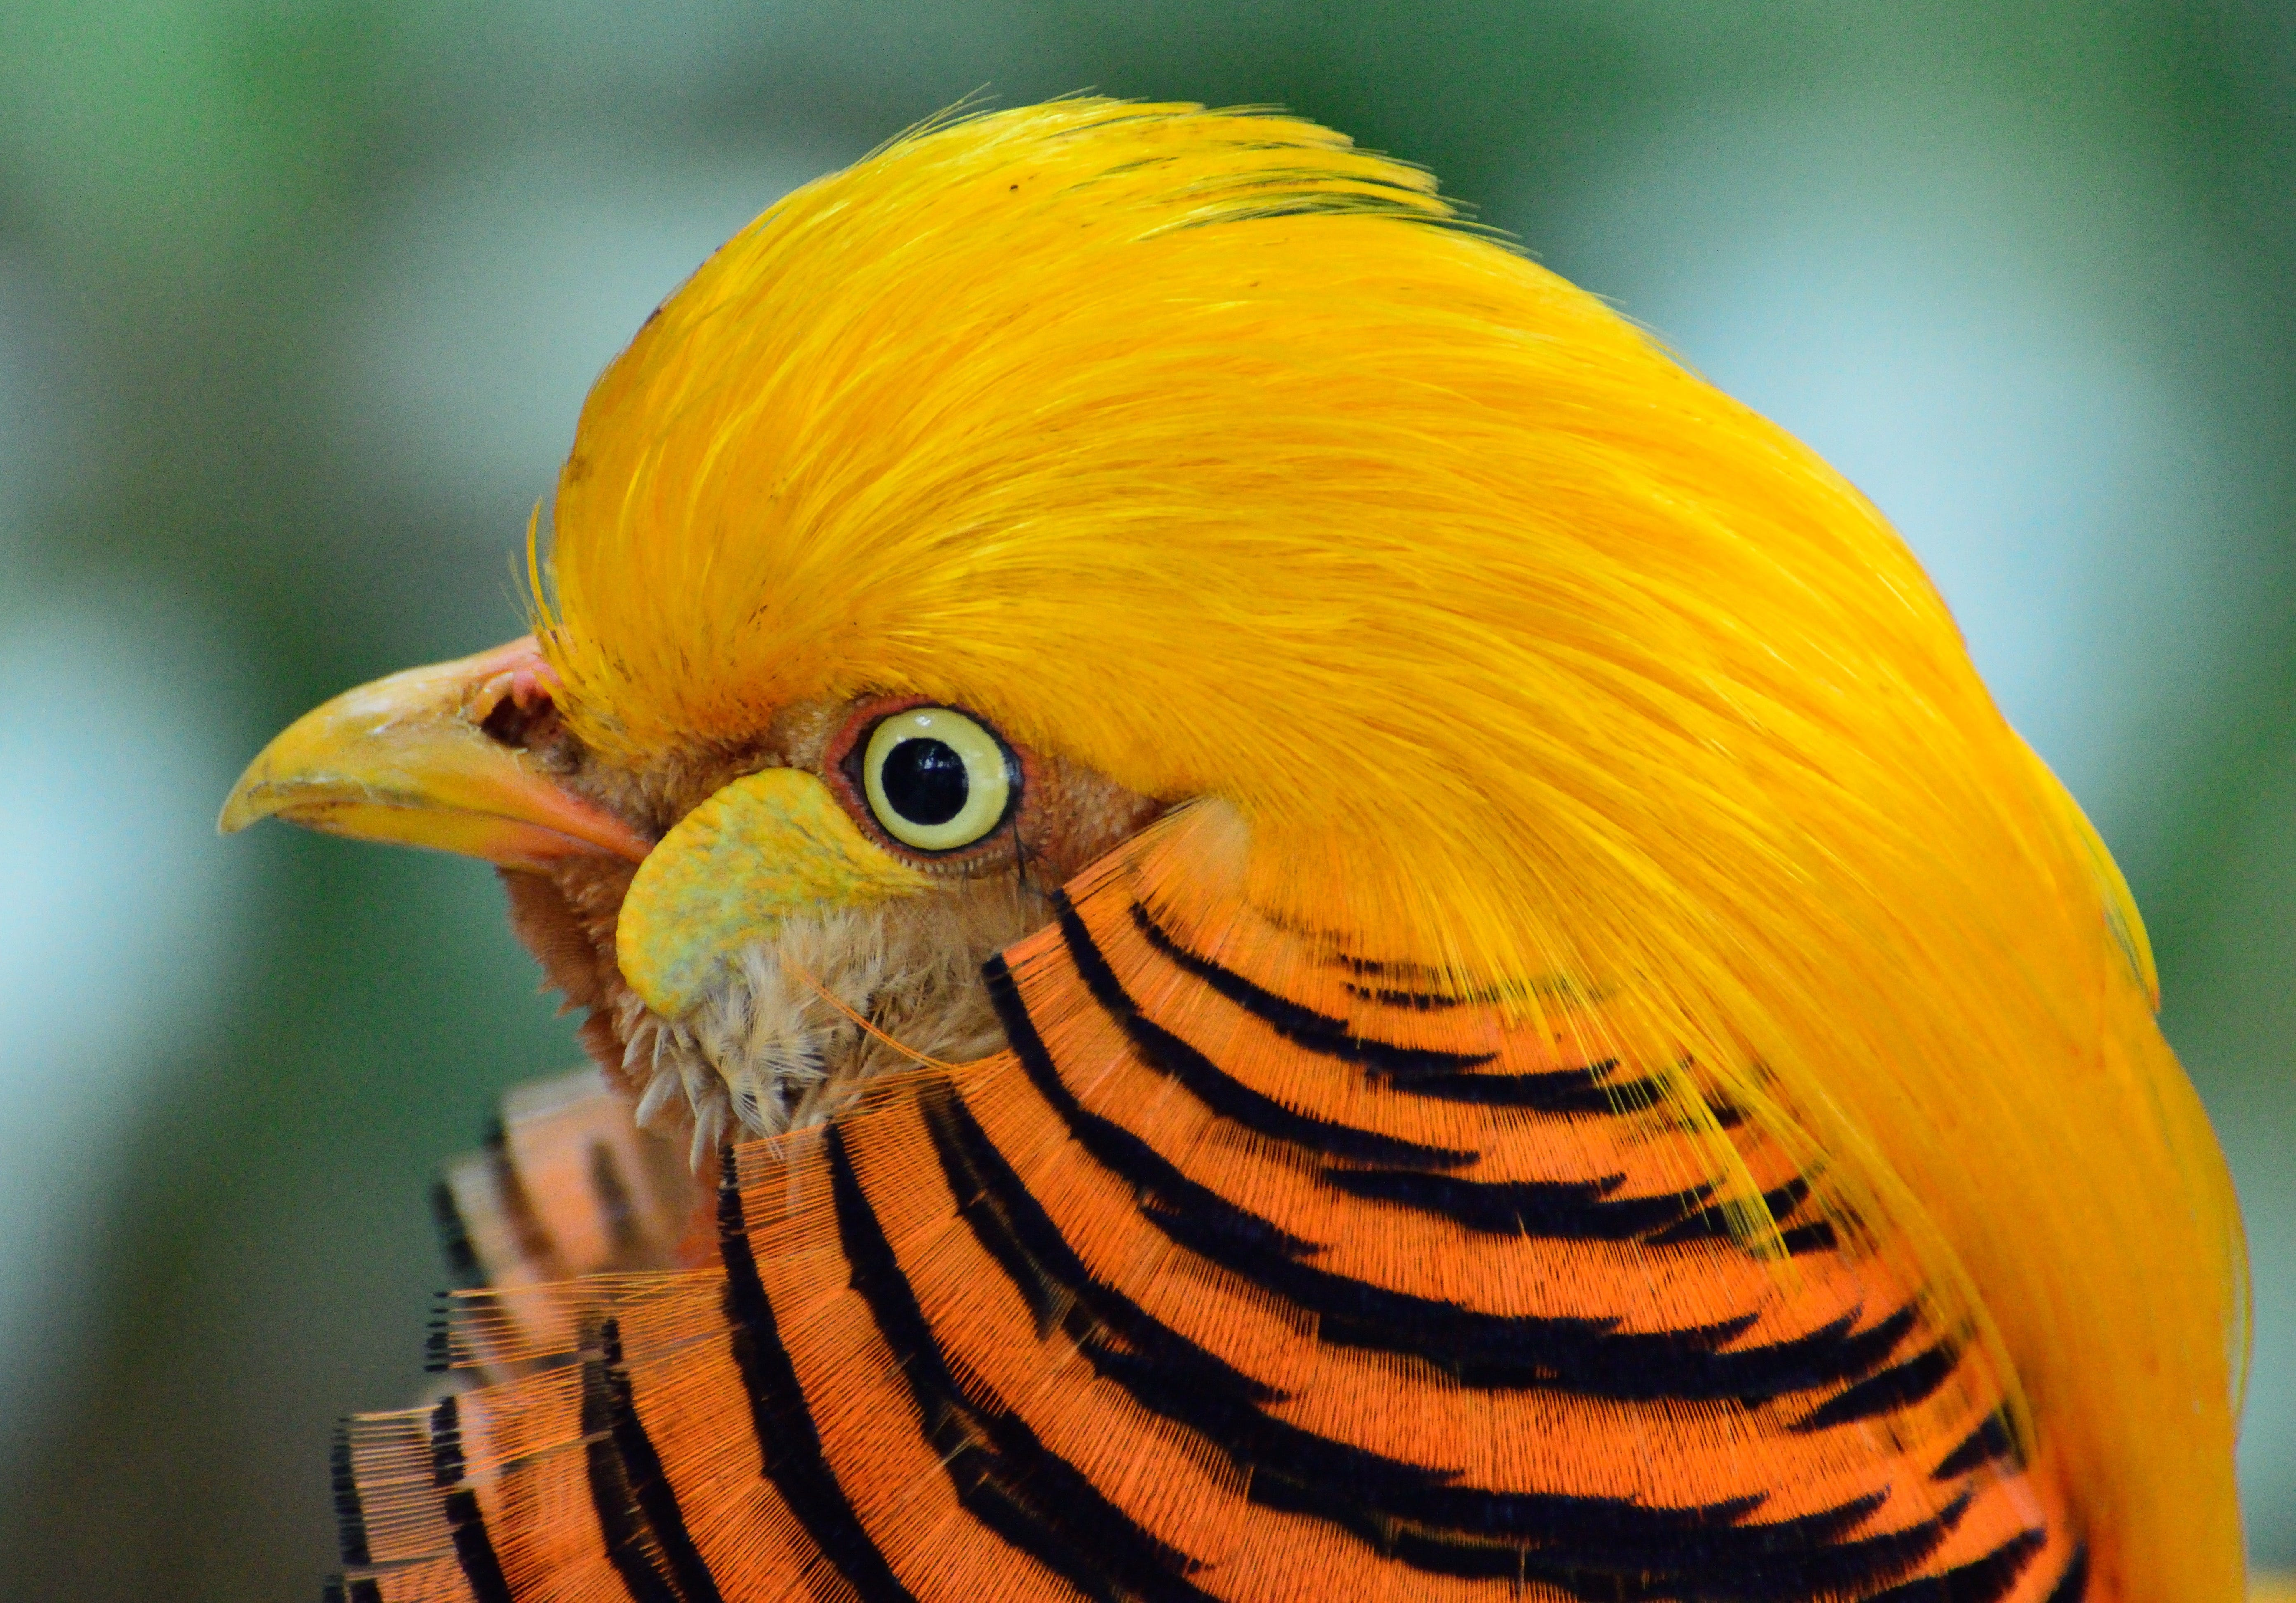 Yellow Black and Orange Bird Head